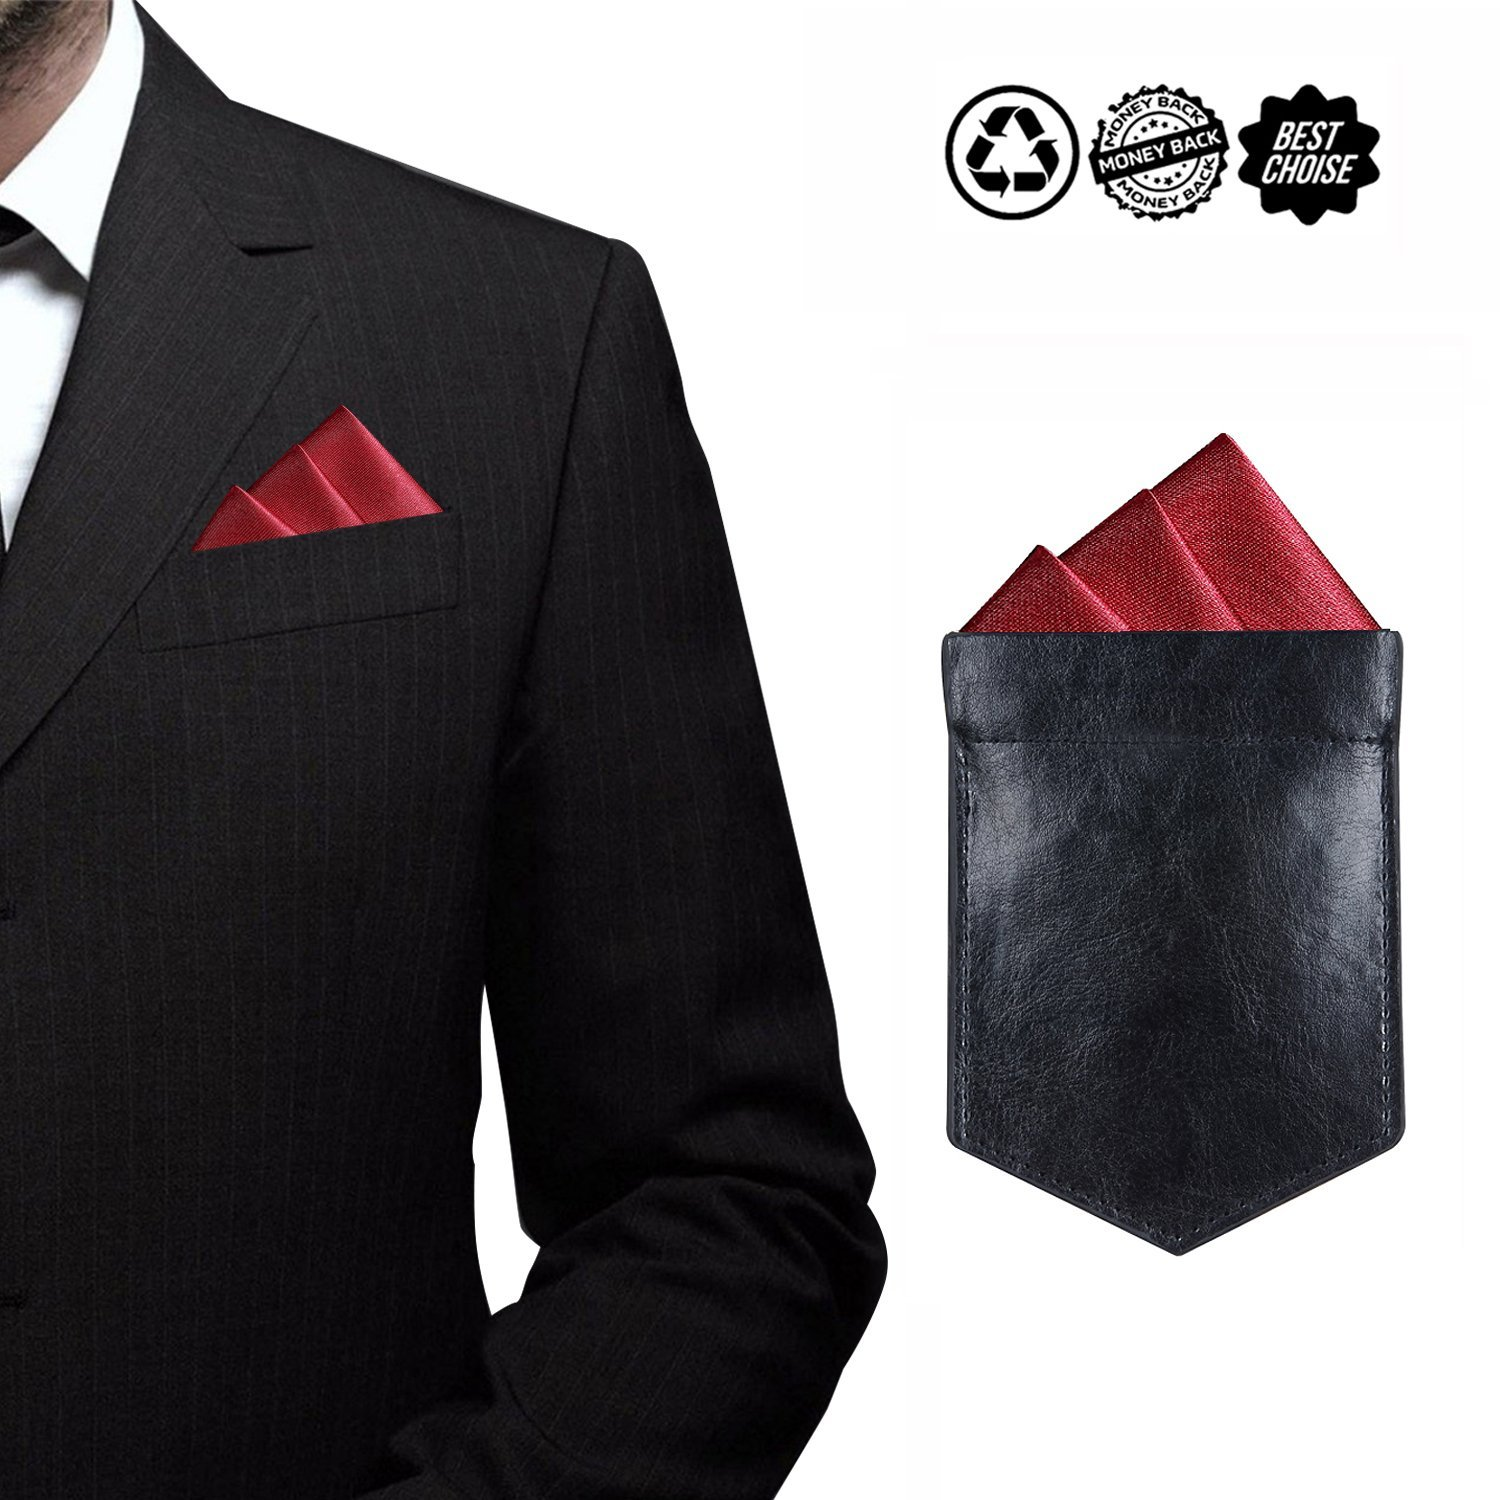 ONLVAN Pocket Square Holder Leather Slim Pocket Square Holder for Men's Suit Handkerchief Keeper (Black)